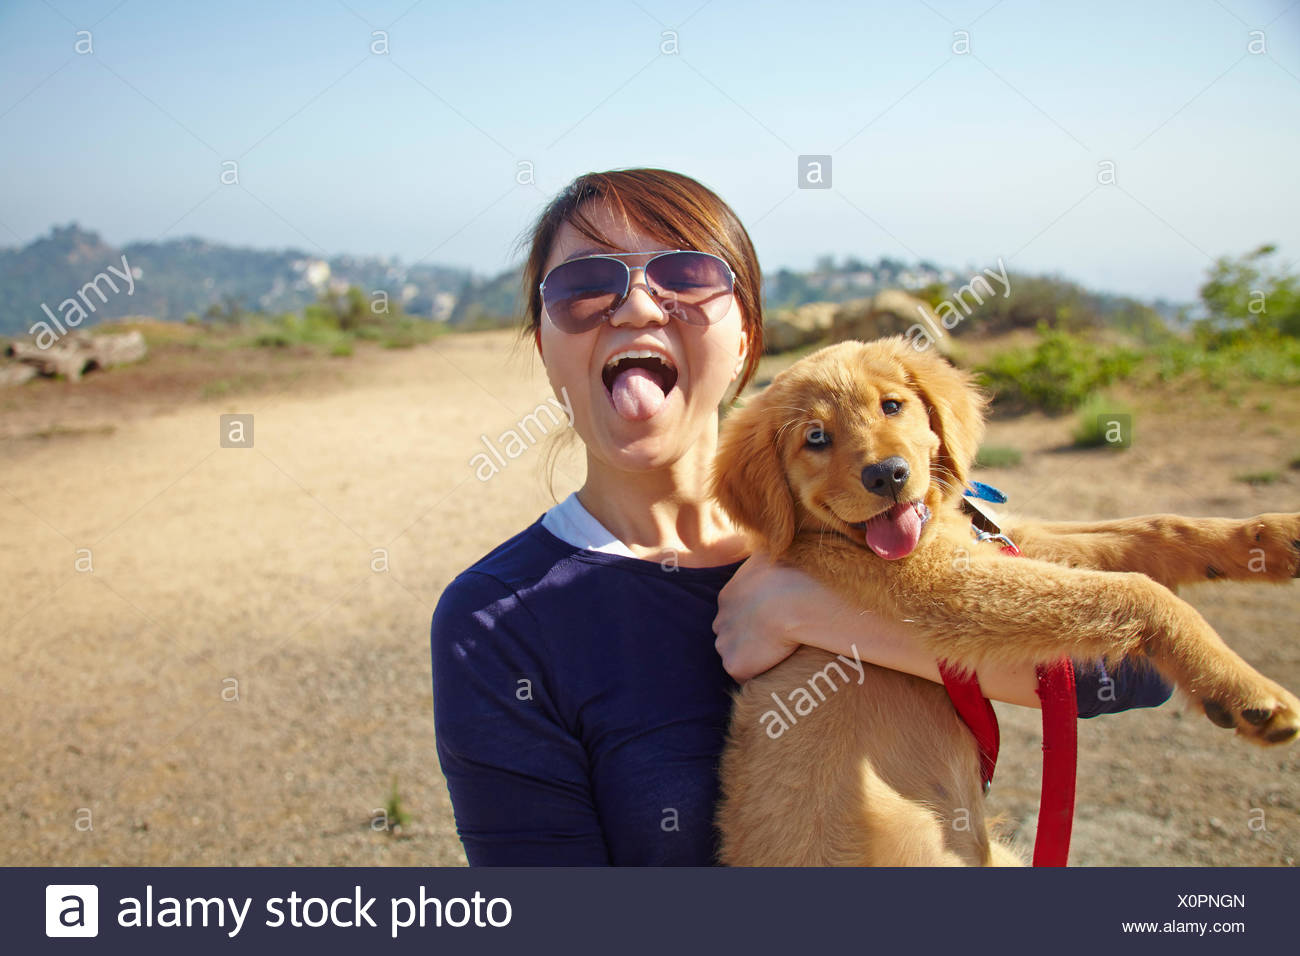 Young woman holding labrador puppy, tongues out - Stock Image